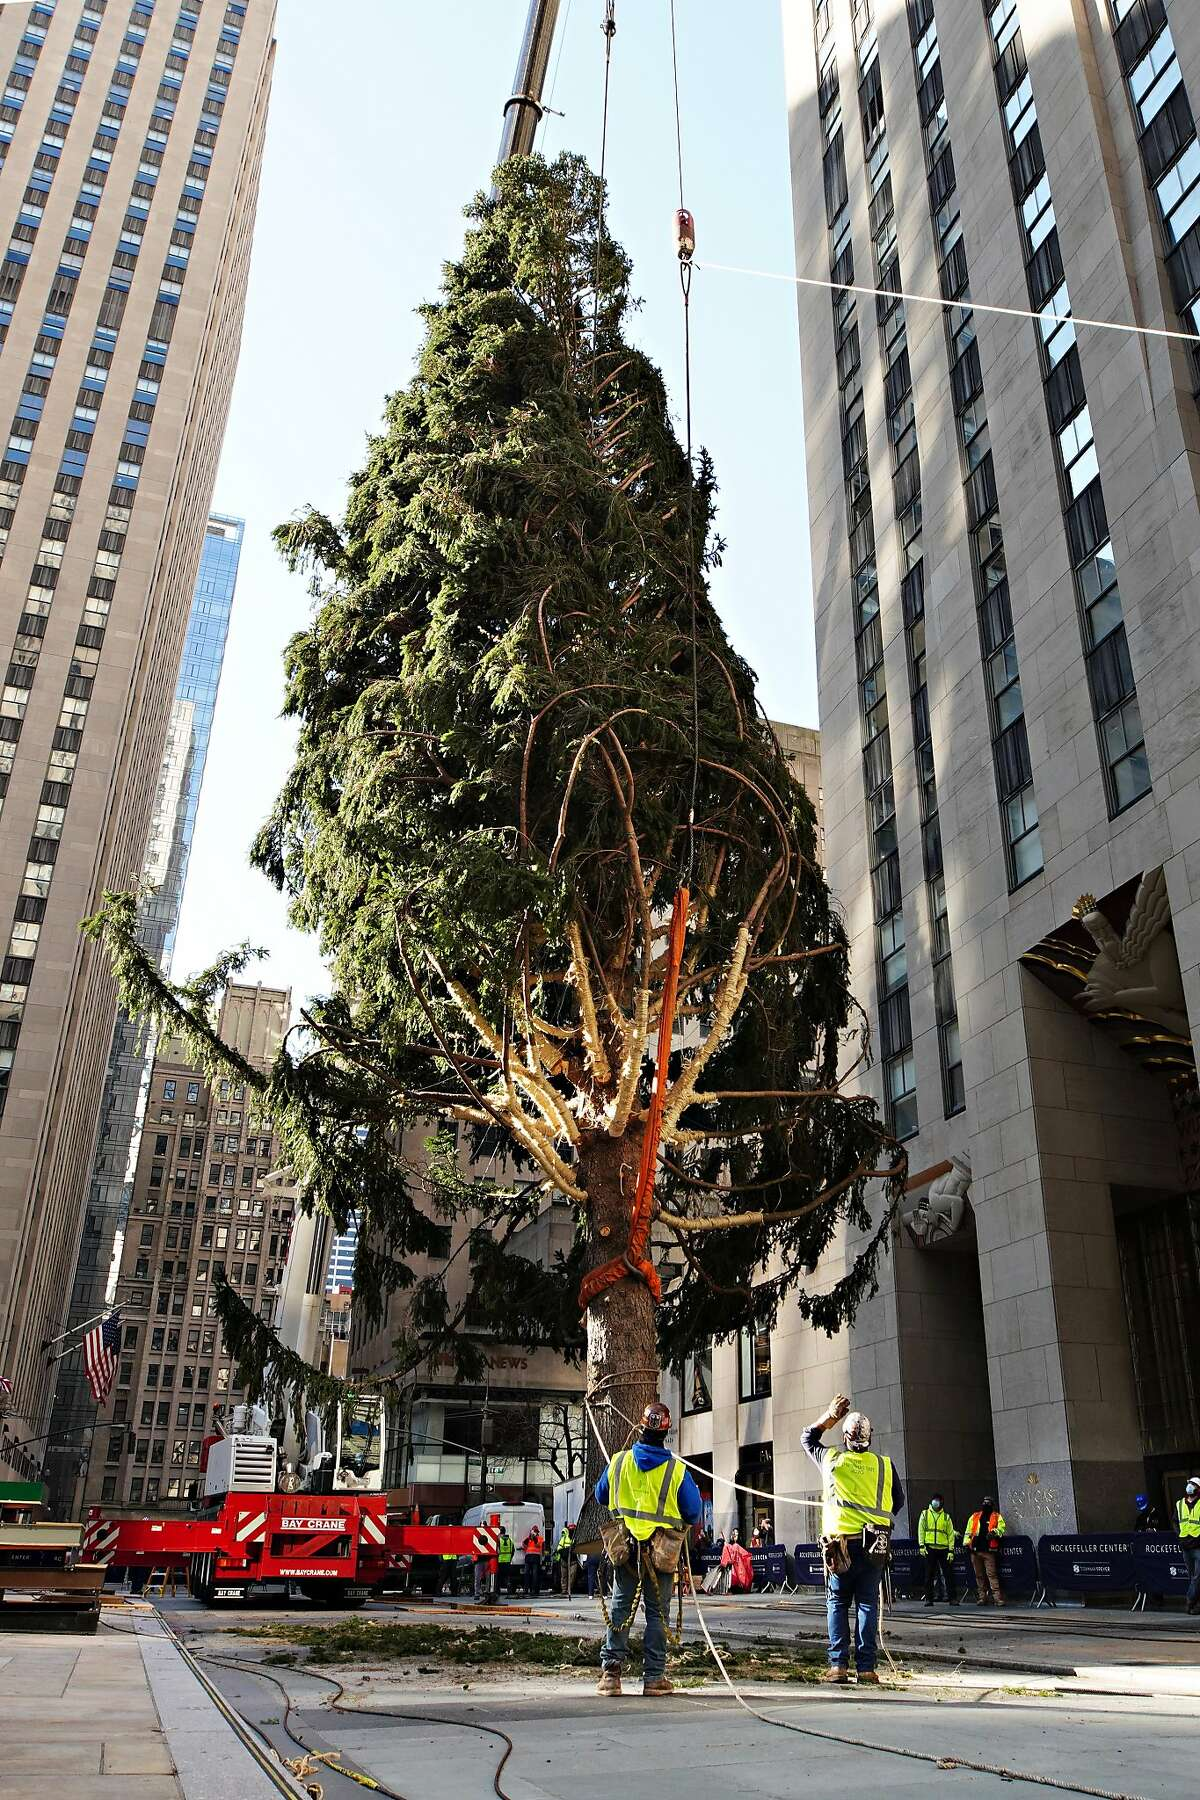 NEW YORK, NEW YORK - NOVEMBER 14: The Rockefeller Center Christmas Tree arrives at Rockefeller Plaza and is craned into place on November 14, 2020 in New York City. (Photo by Cindy Ord/Getty Images)